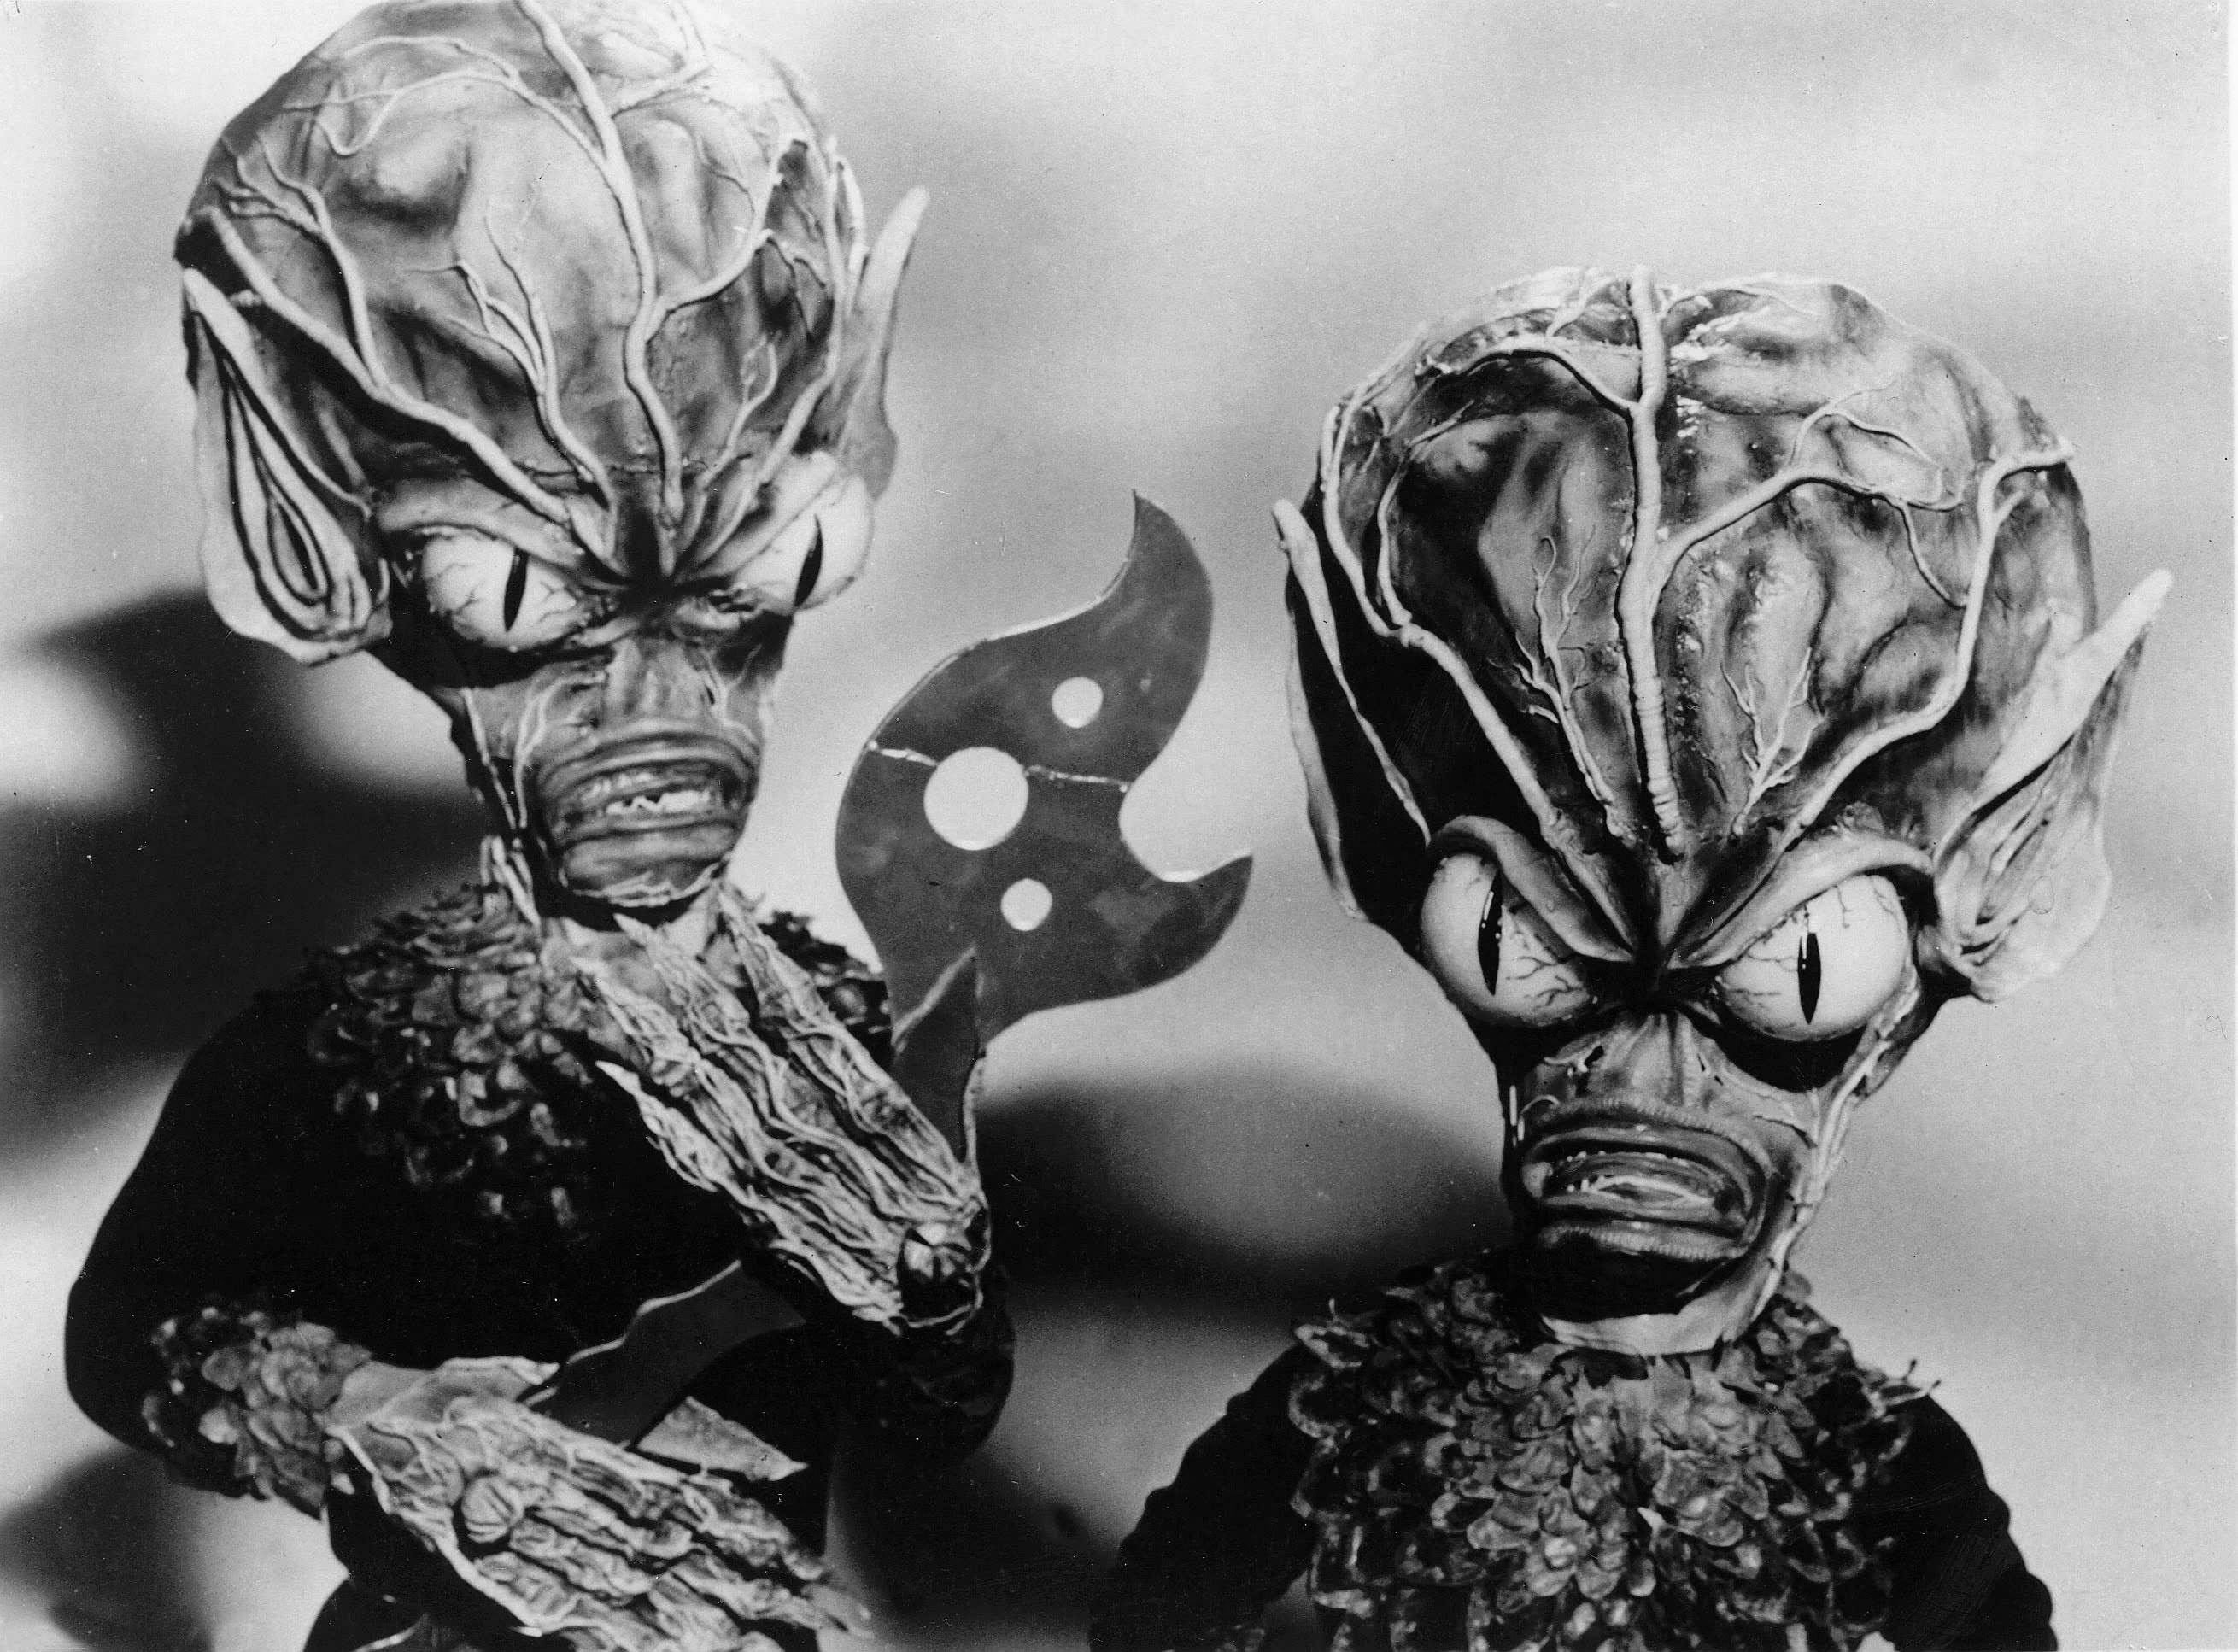 The aliens in Invasion of the Saucer Men (1957)